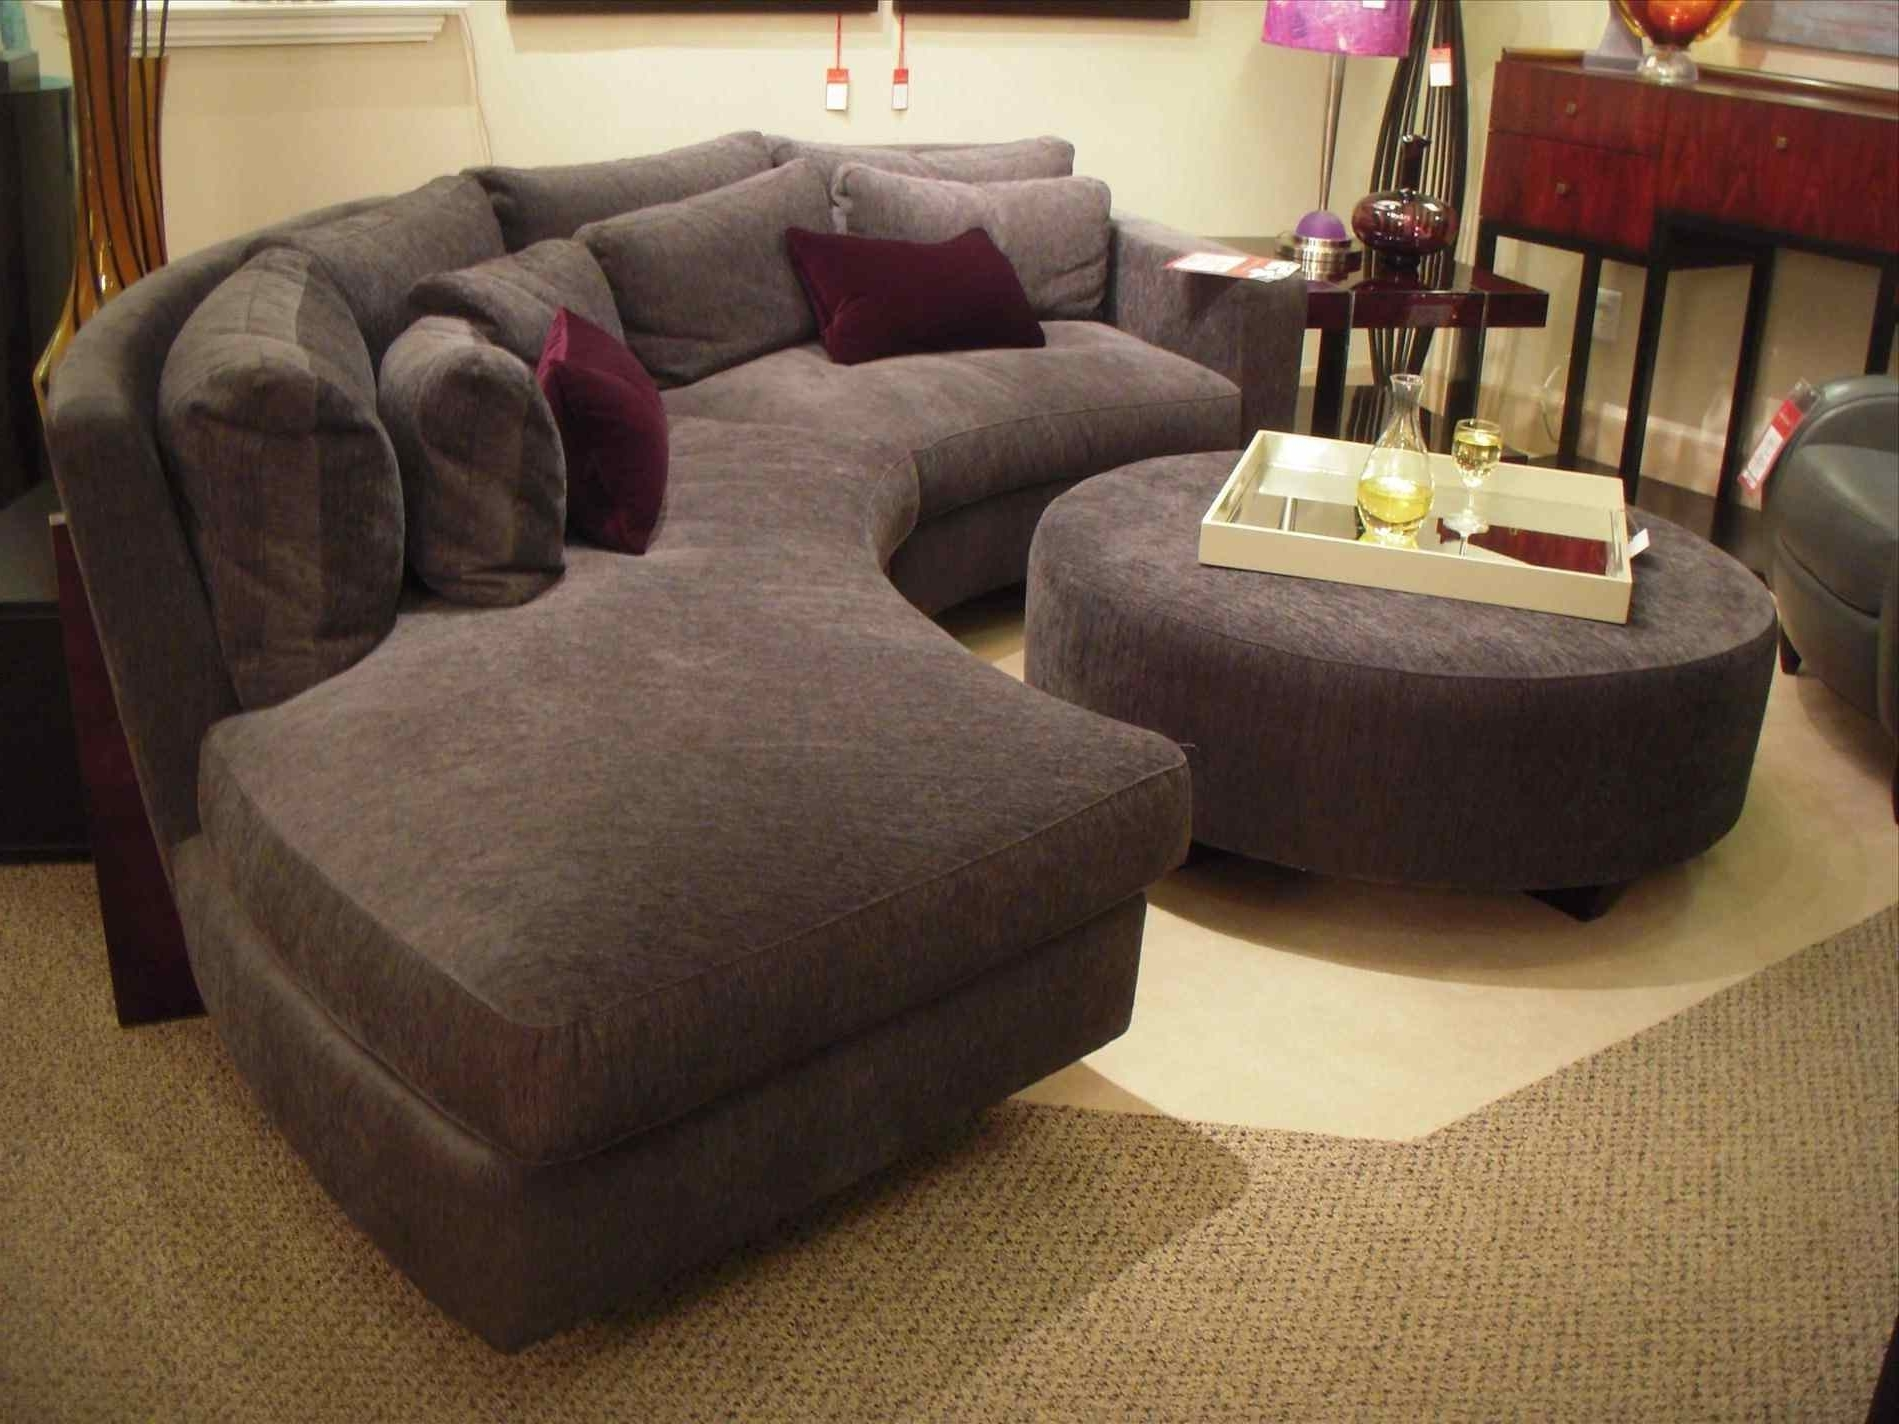 Round Sofas Within 2019 Couch : Wonderful Antique Studio Leather Round Couch Chair Sofa (View 9 of 20)